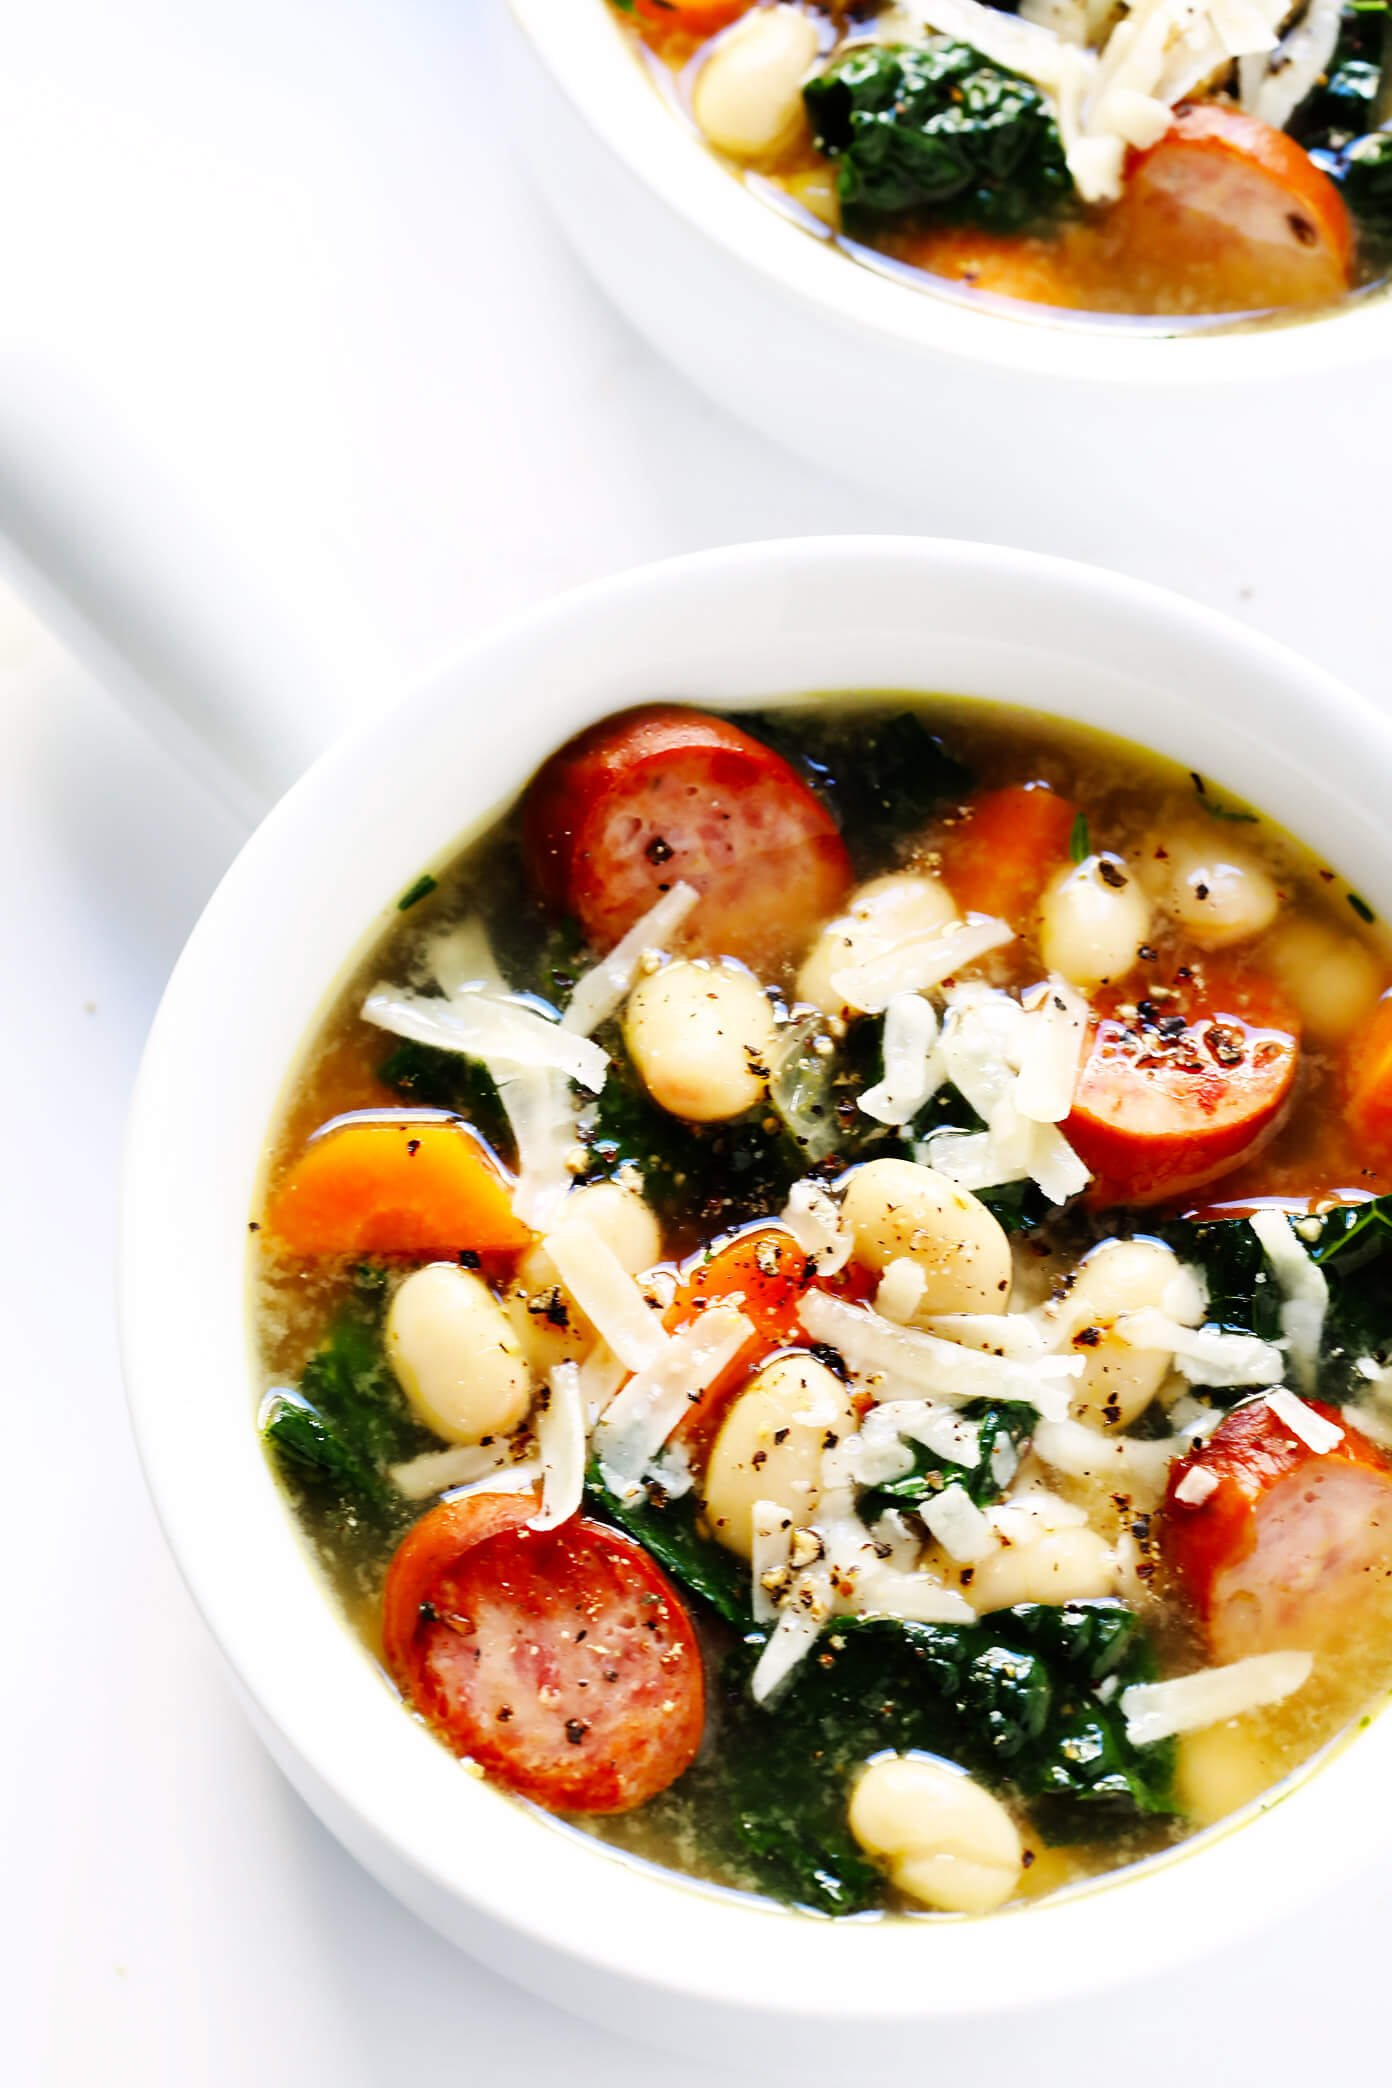 This Tuscan White Beans, Sausage and Kale Soup is one of my favorite winter dinner recipes. It's easy to make, full of cozy Italian flavors, and it's so warm and comforting. | Gimme Some Oven #souprecipe #healthysoup #italianrecipes